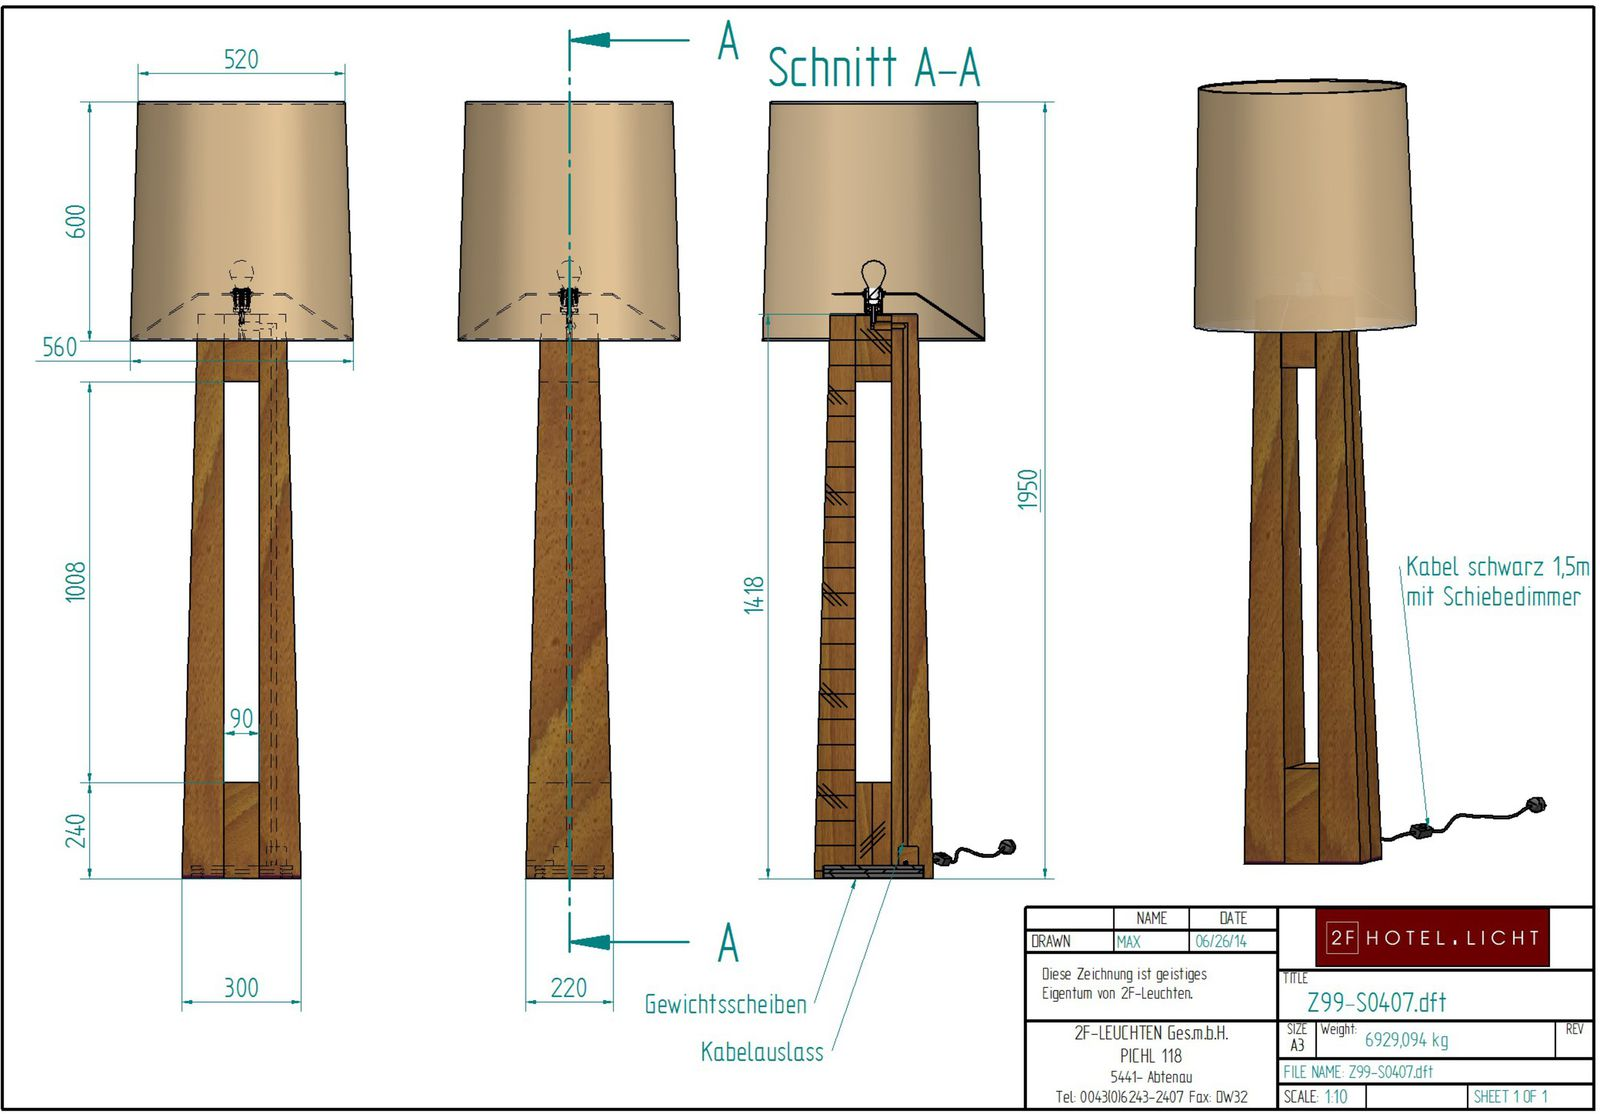 Floor Lamp, L:300mm, wide:220mm, H1950mm, surface: Metal: CM Nickel brushed, techn. Data: 1x27, 72W, A60, 230V, cable colour: black, 1,5m L